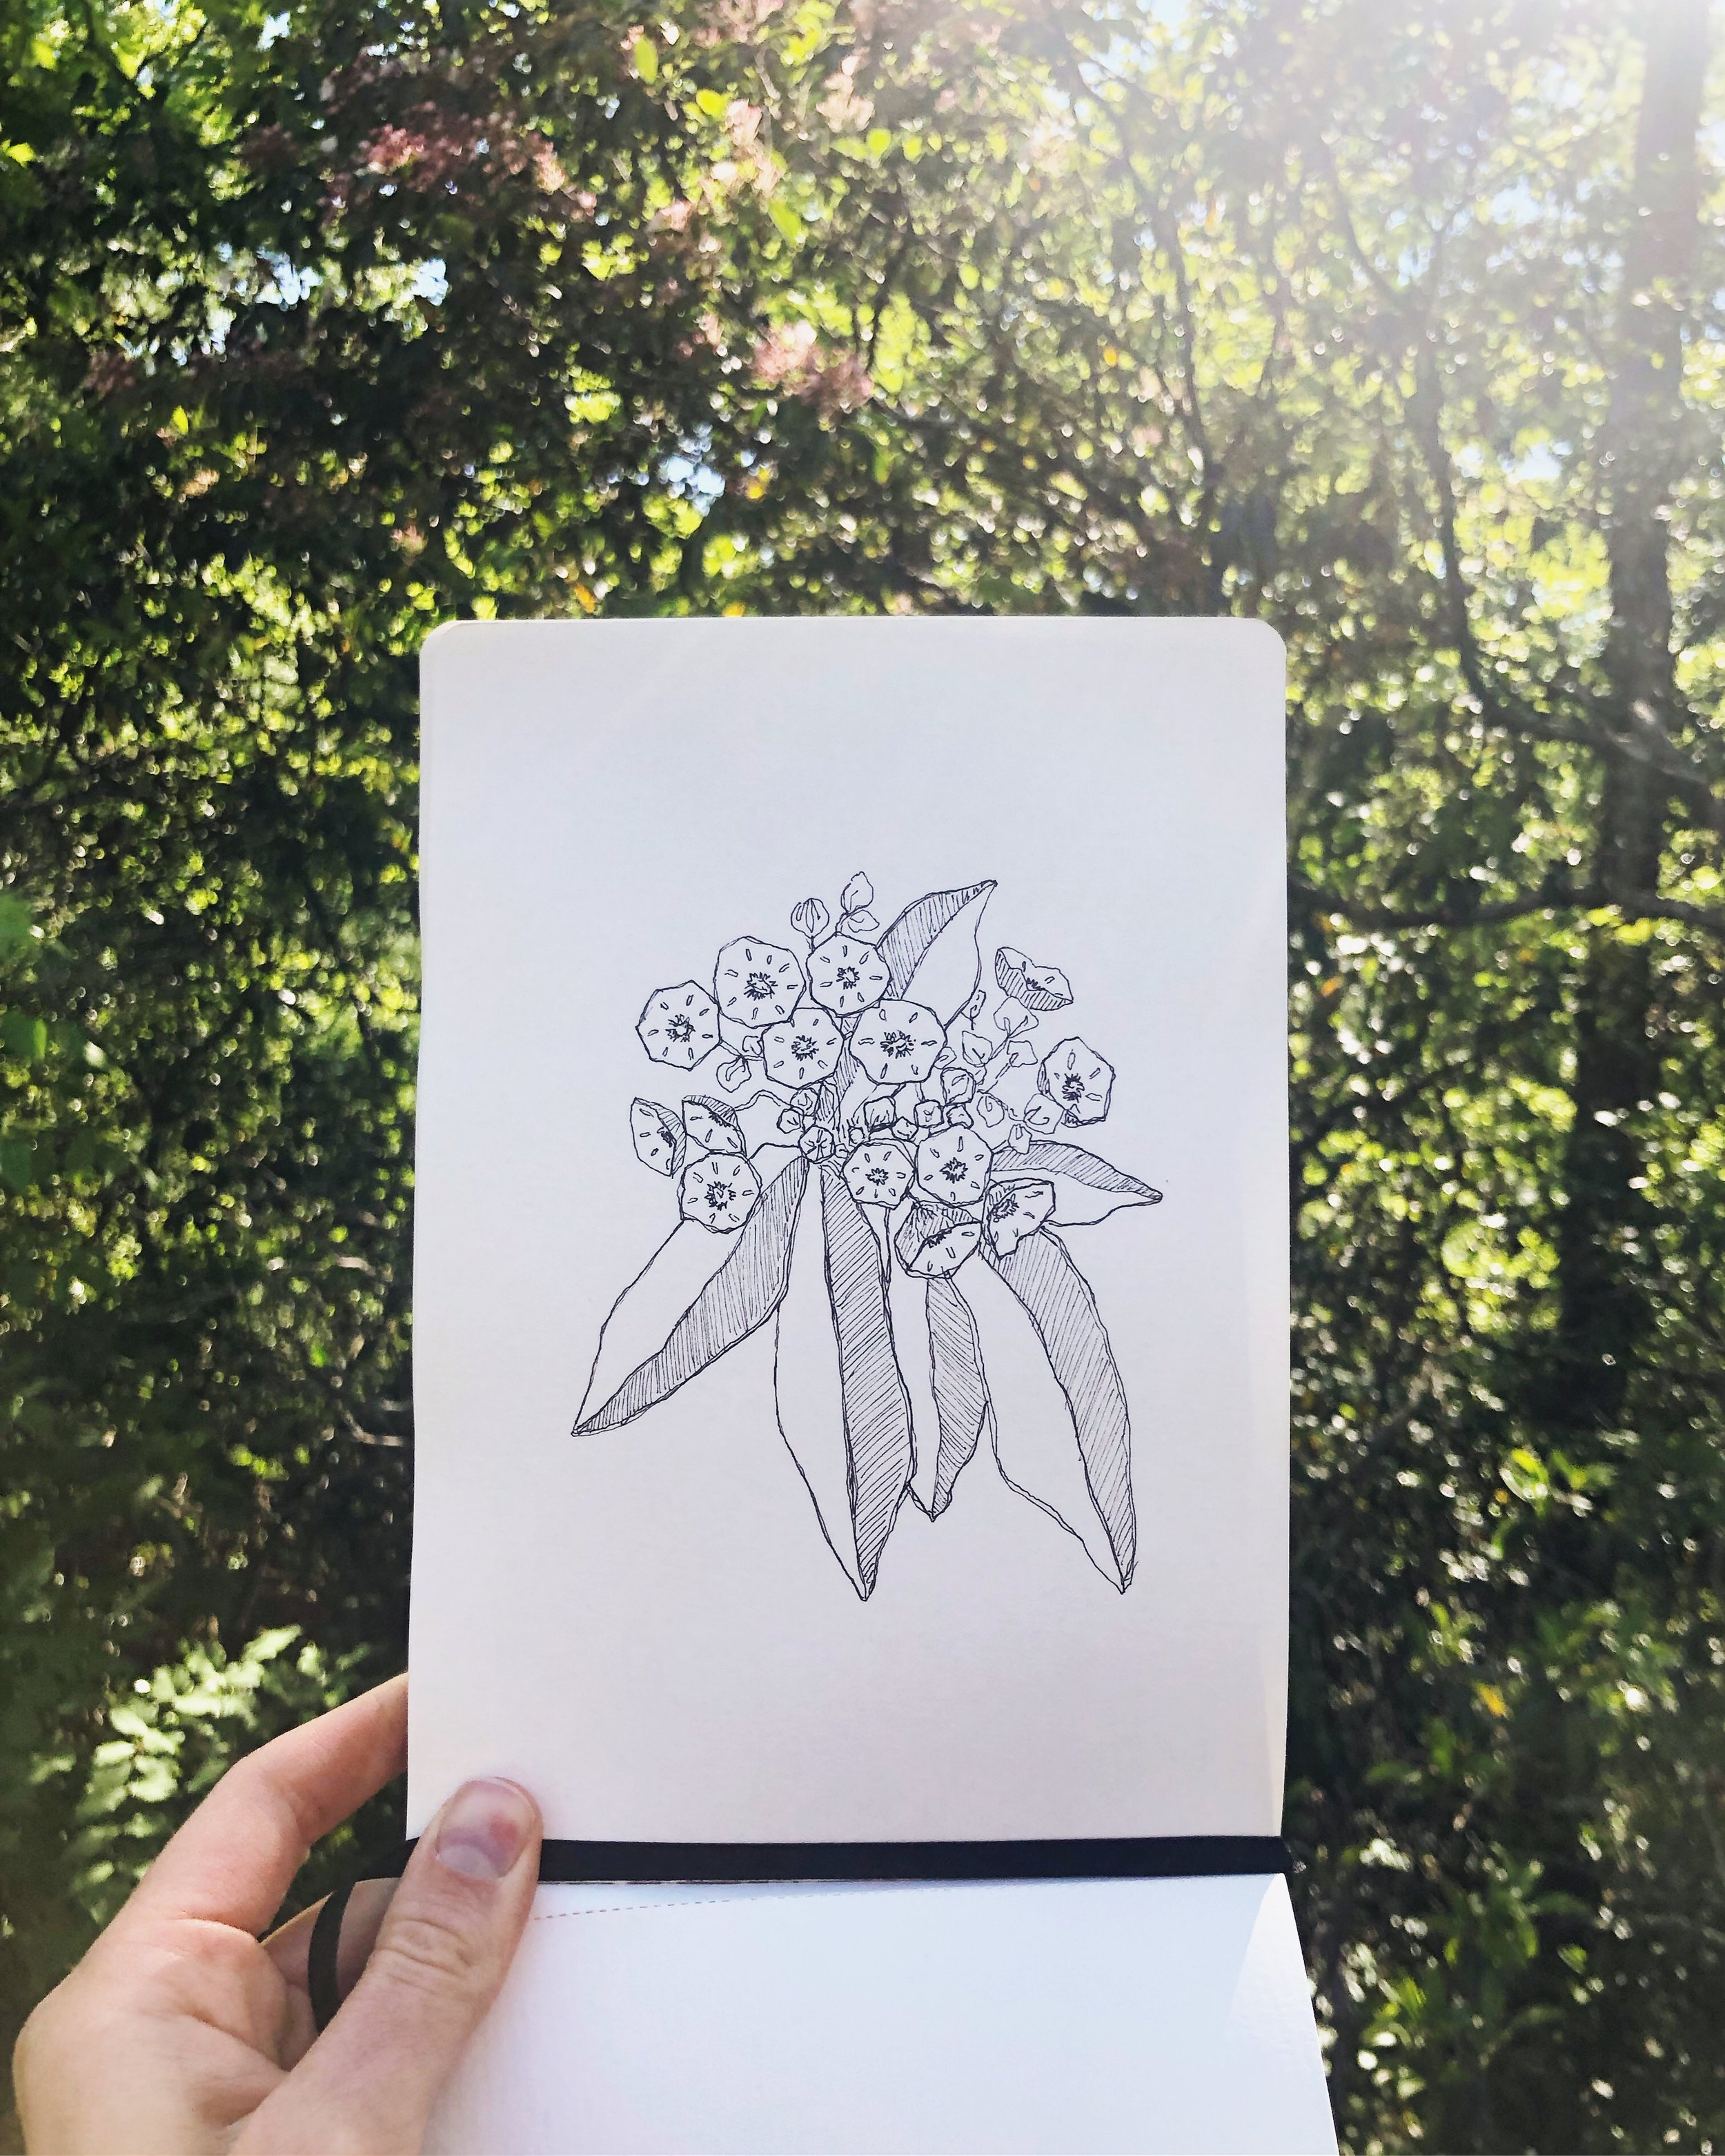 Amidst a string of nights out of town and days away from home, I brought out the sketchbook and doodled this Mountain Laurel…